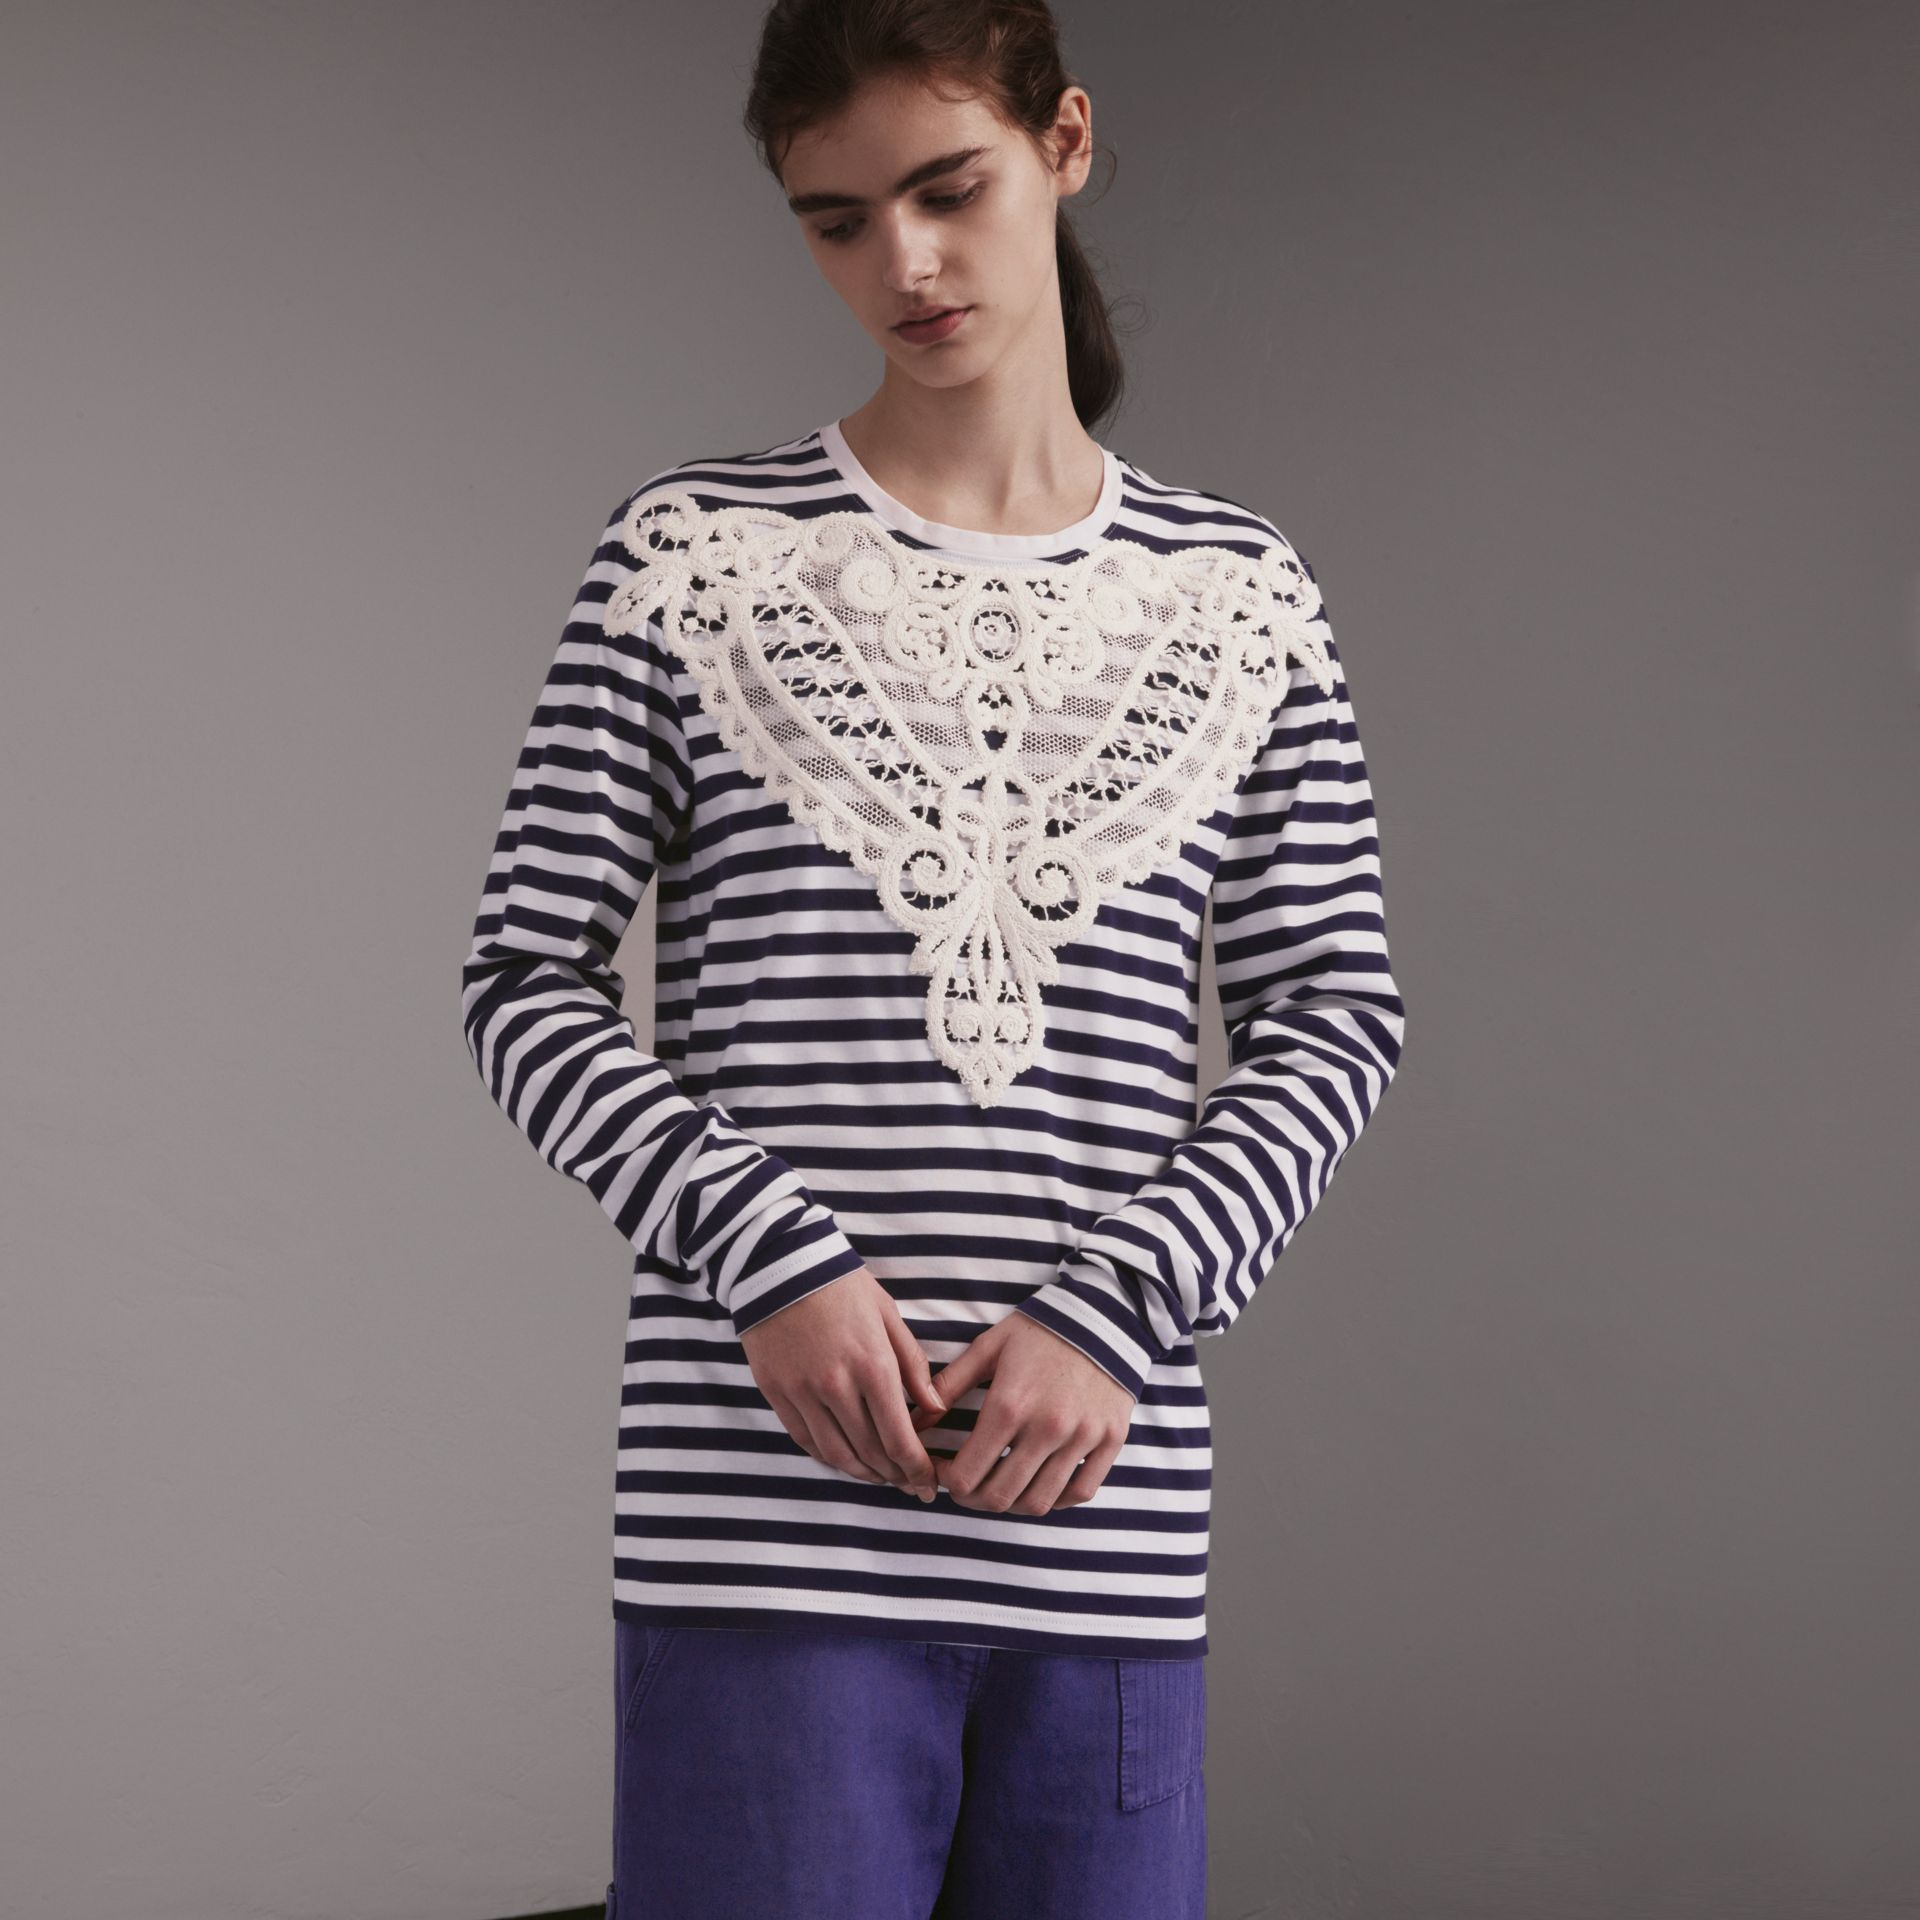 Unisex Lace Appliqué Breton Stripe Cotton Top in Indigo - Women | Burberry - gallery image 0